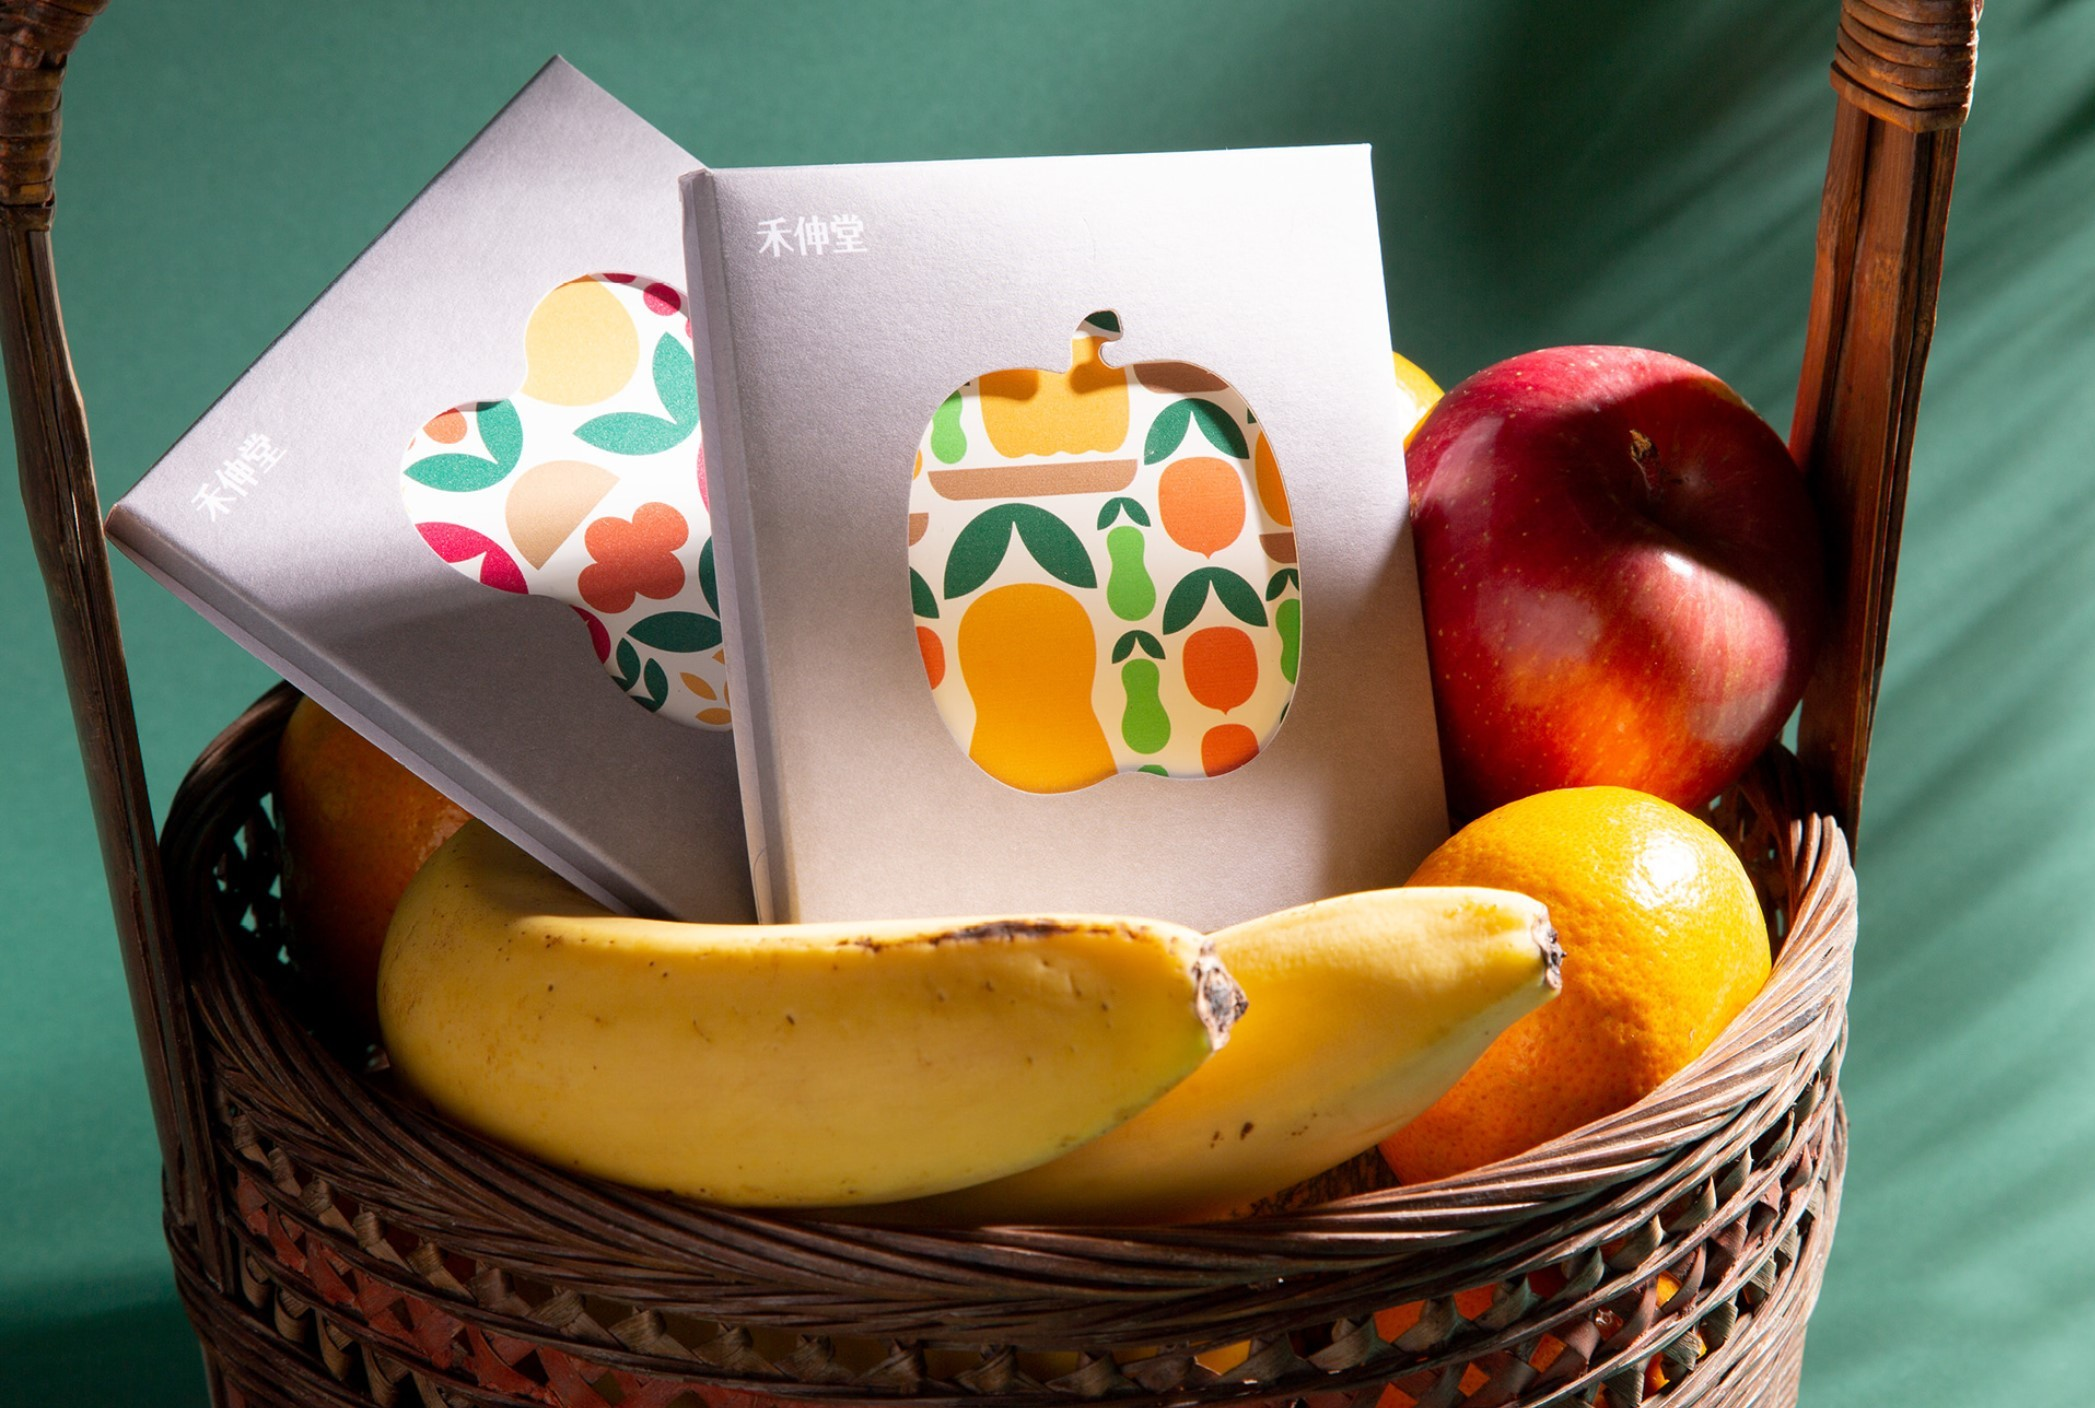 Behance: Very nice fruit-based branding work for a company by the name of Holystone